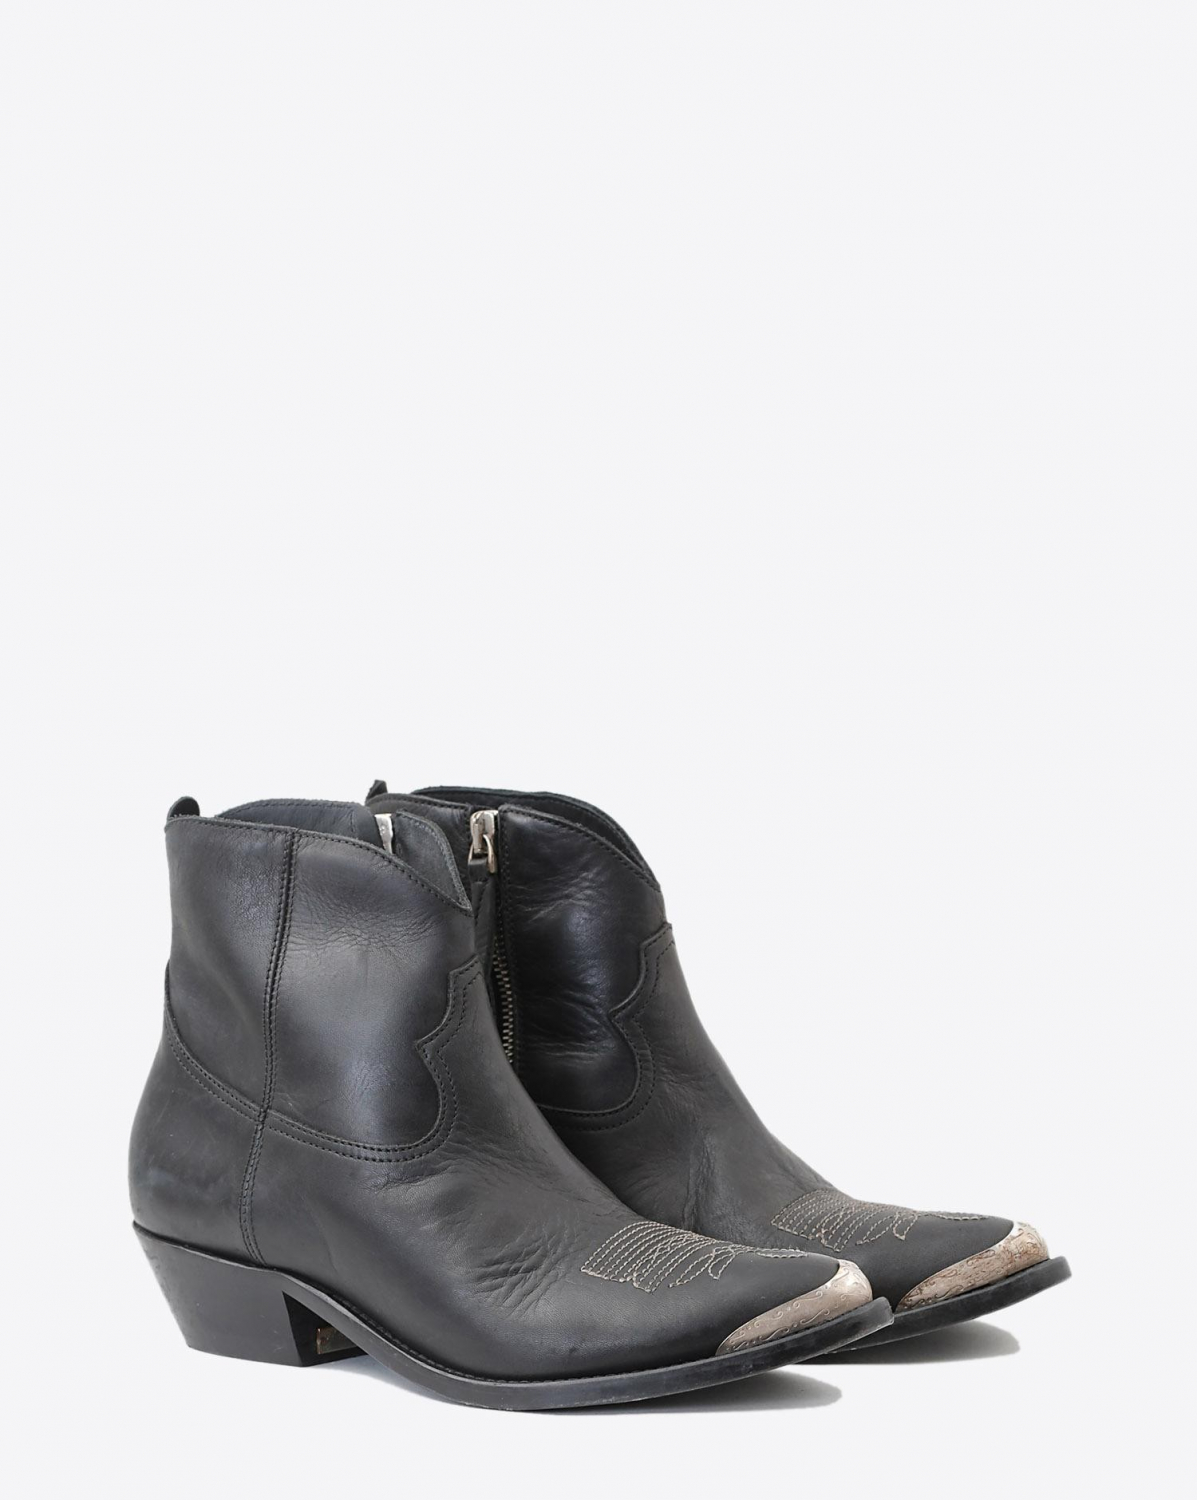 Golden Goose Woman Chaussures Pré-Collection Boots Young Black Leather